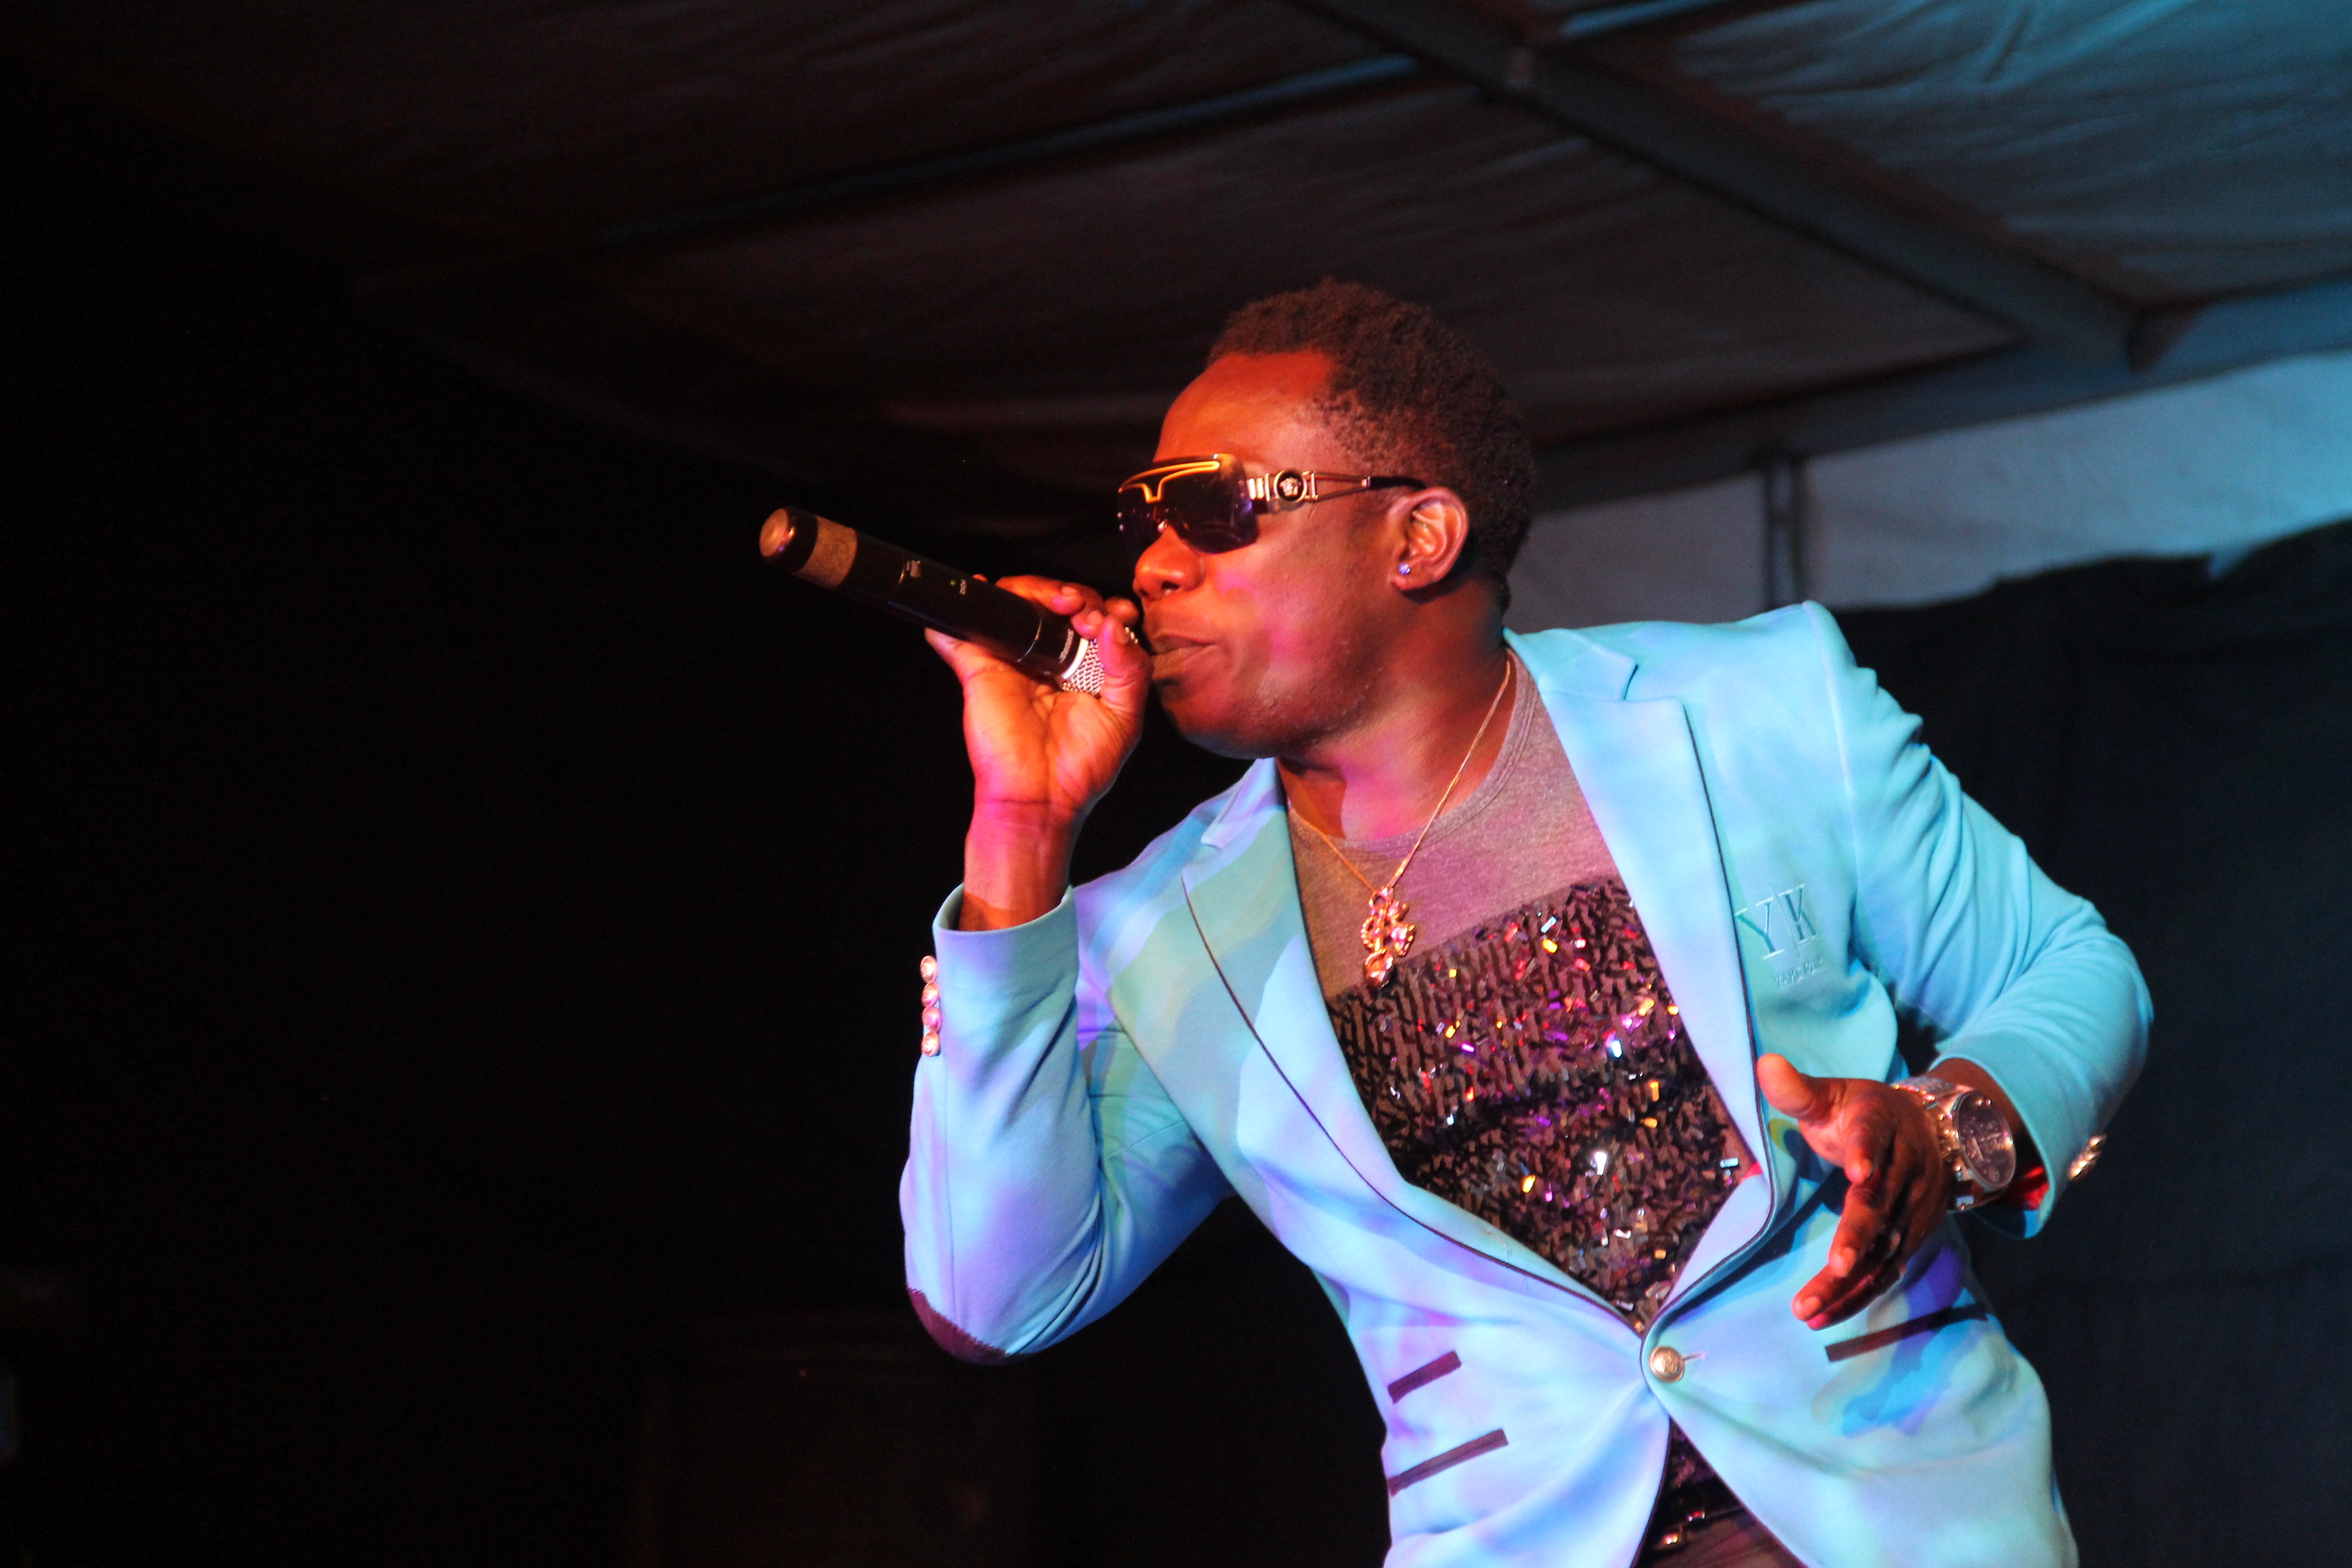 Duncan mighty performing on stage